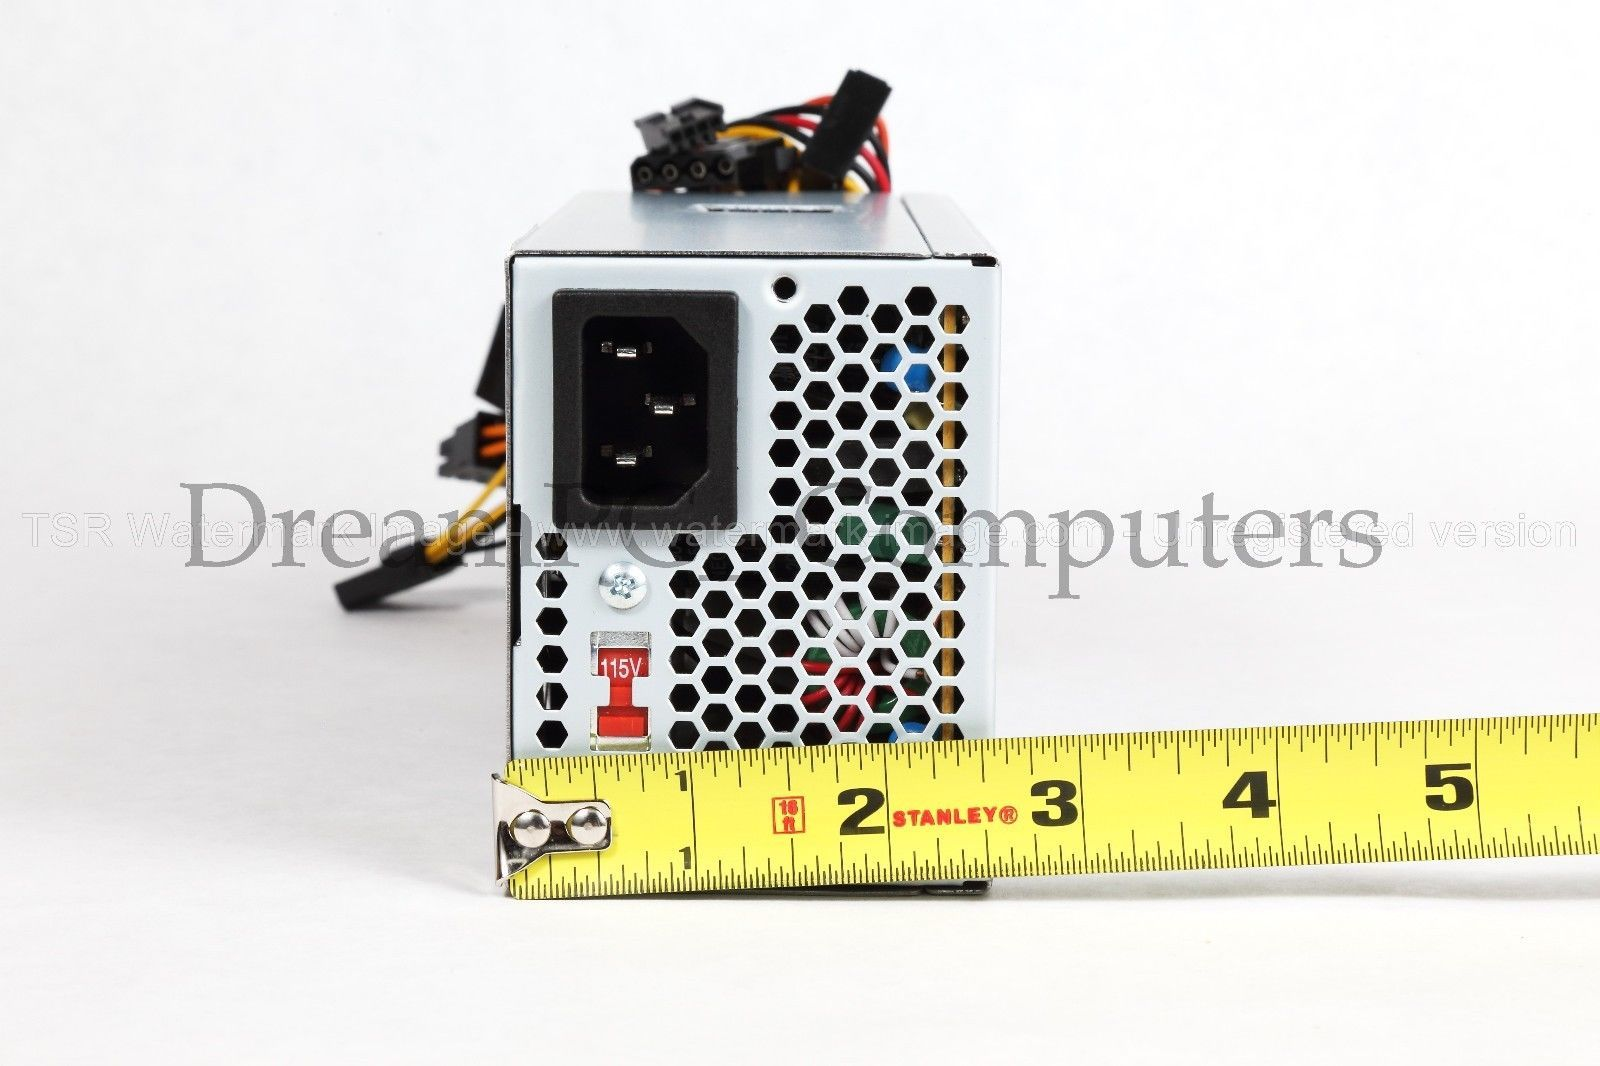 New PC Power Supply Upgrade for Dell Inspiron 546ST Slimline SFF Computer